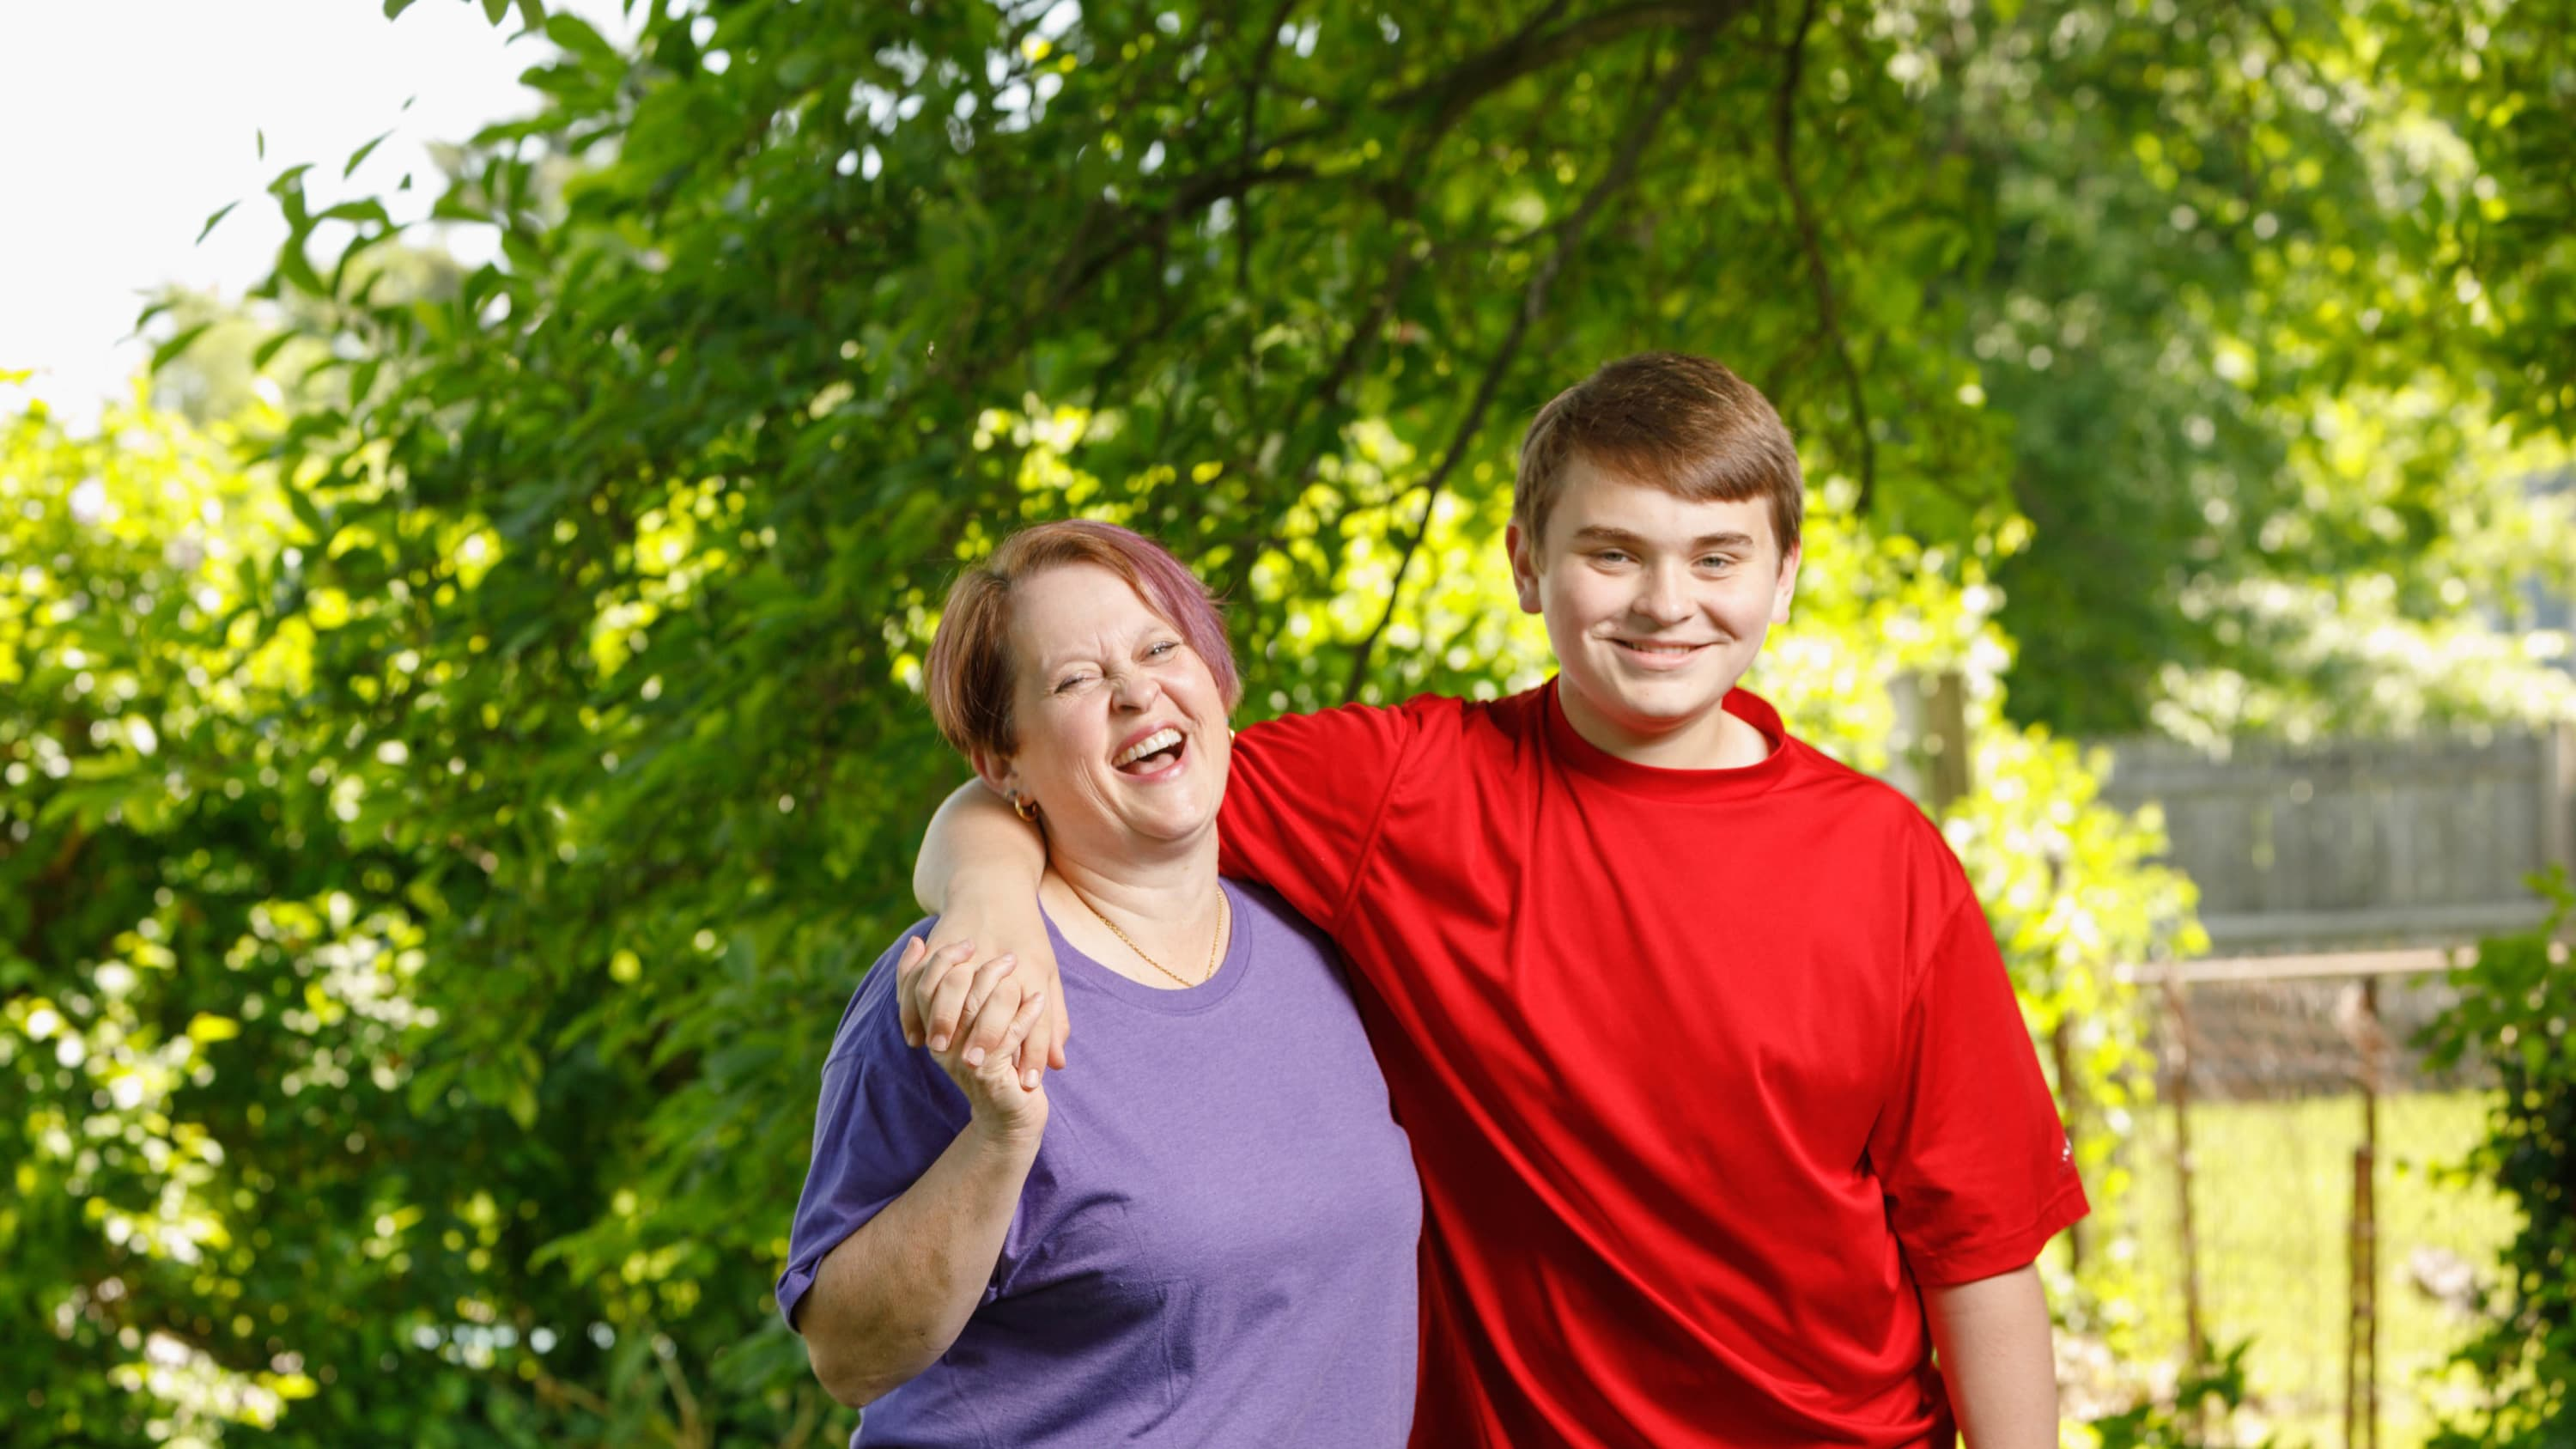 A mother and son stand in their backyard smiling and laughing.